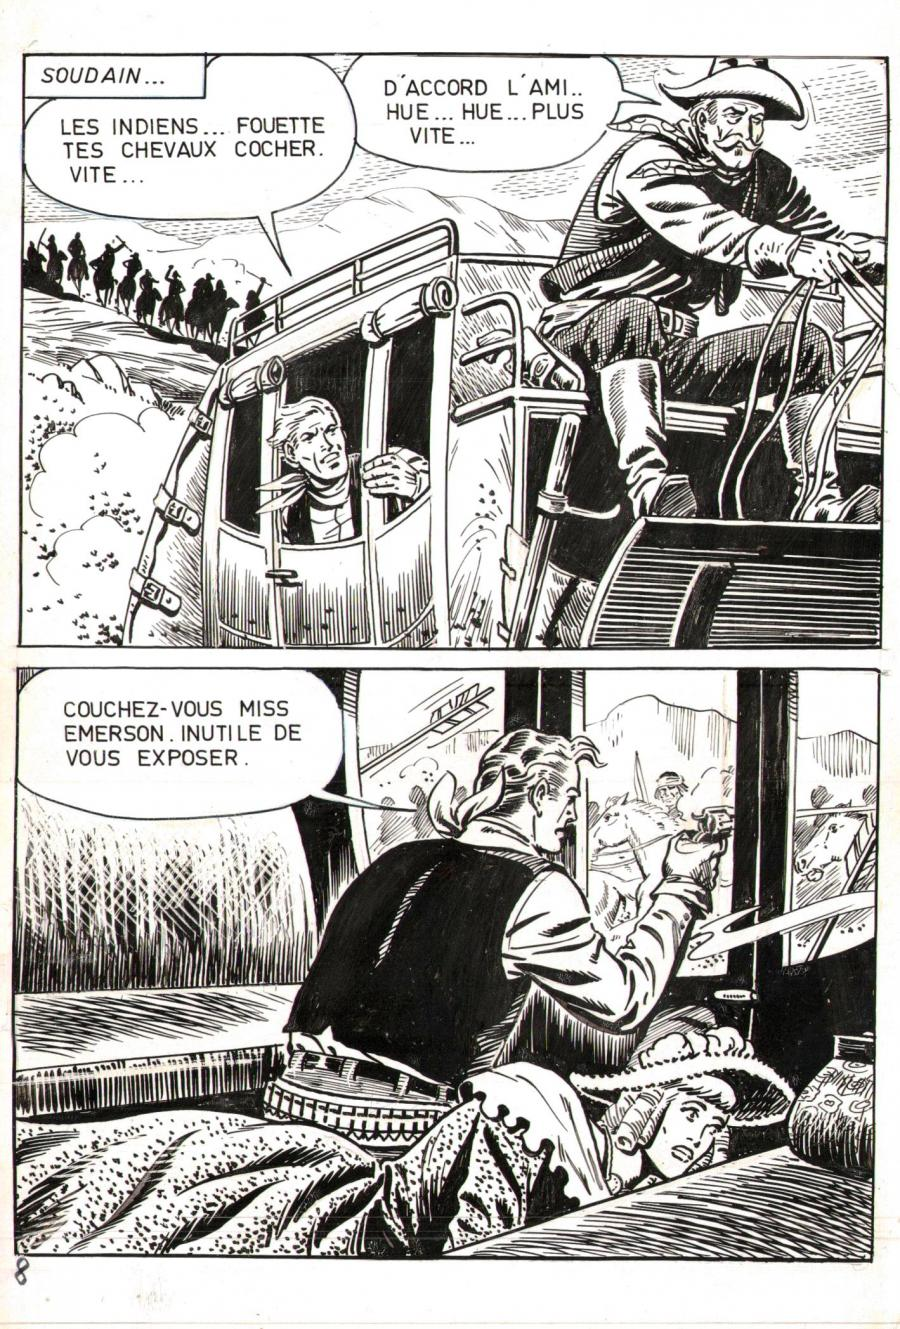 Robert LEGUAY's original comic art BUCK JOHN page 8